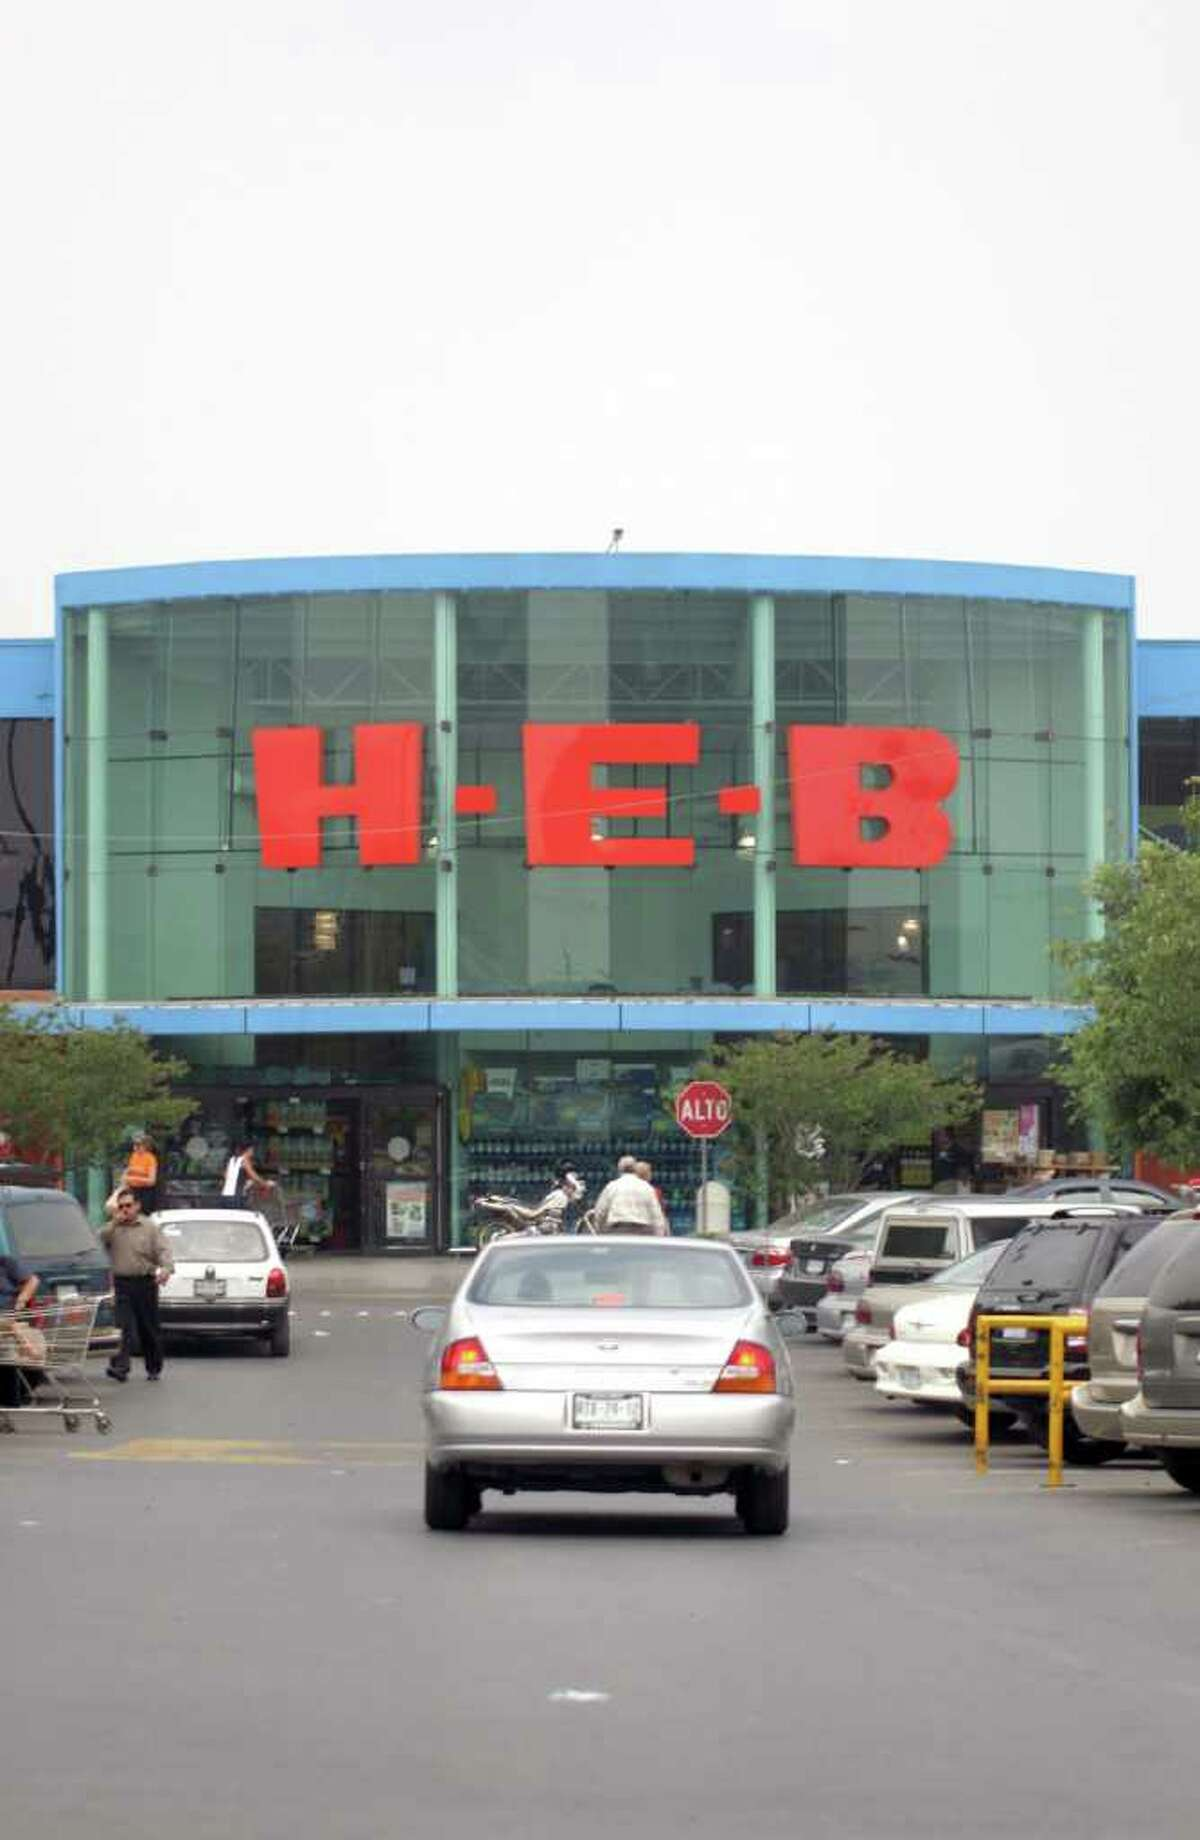 H-E-B supermarket in Monterrey, Mexico